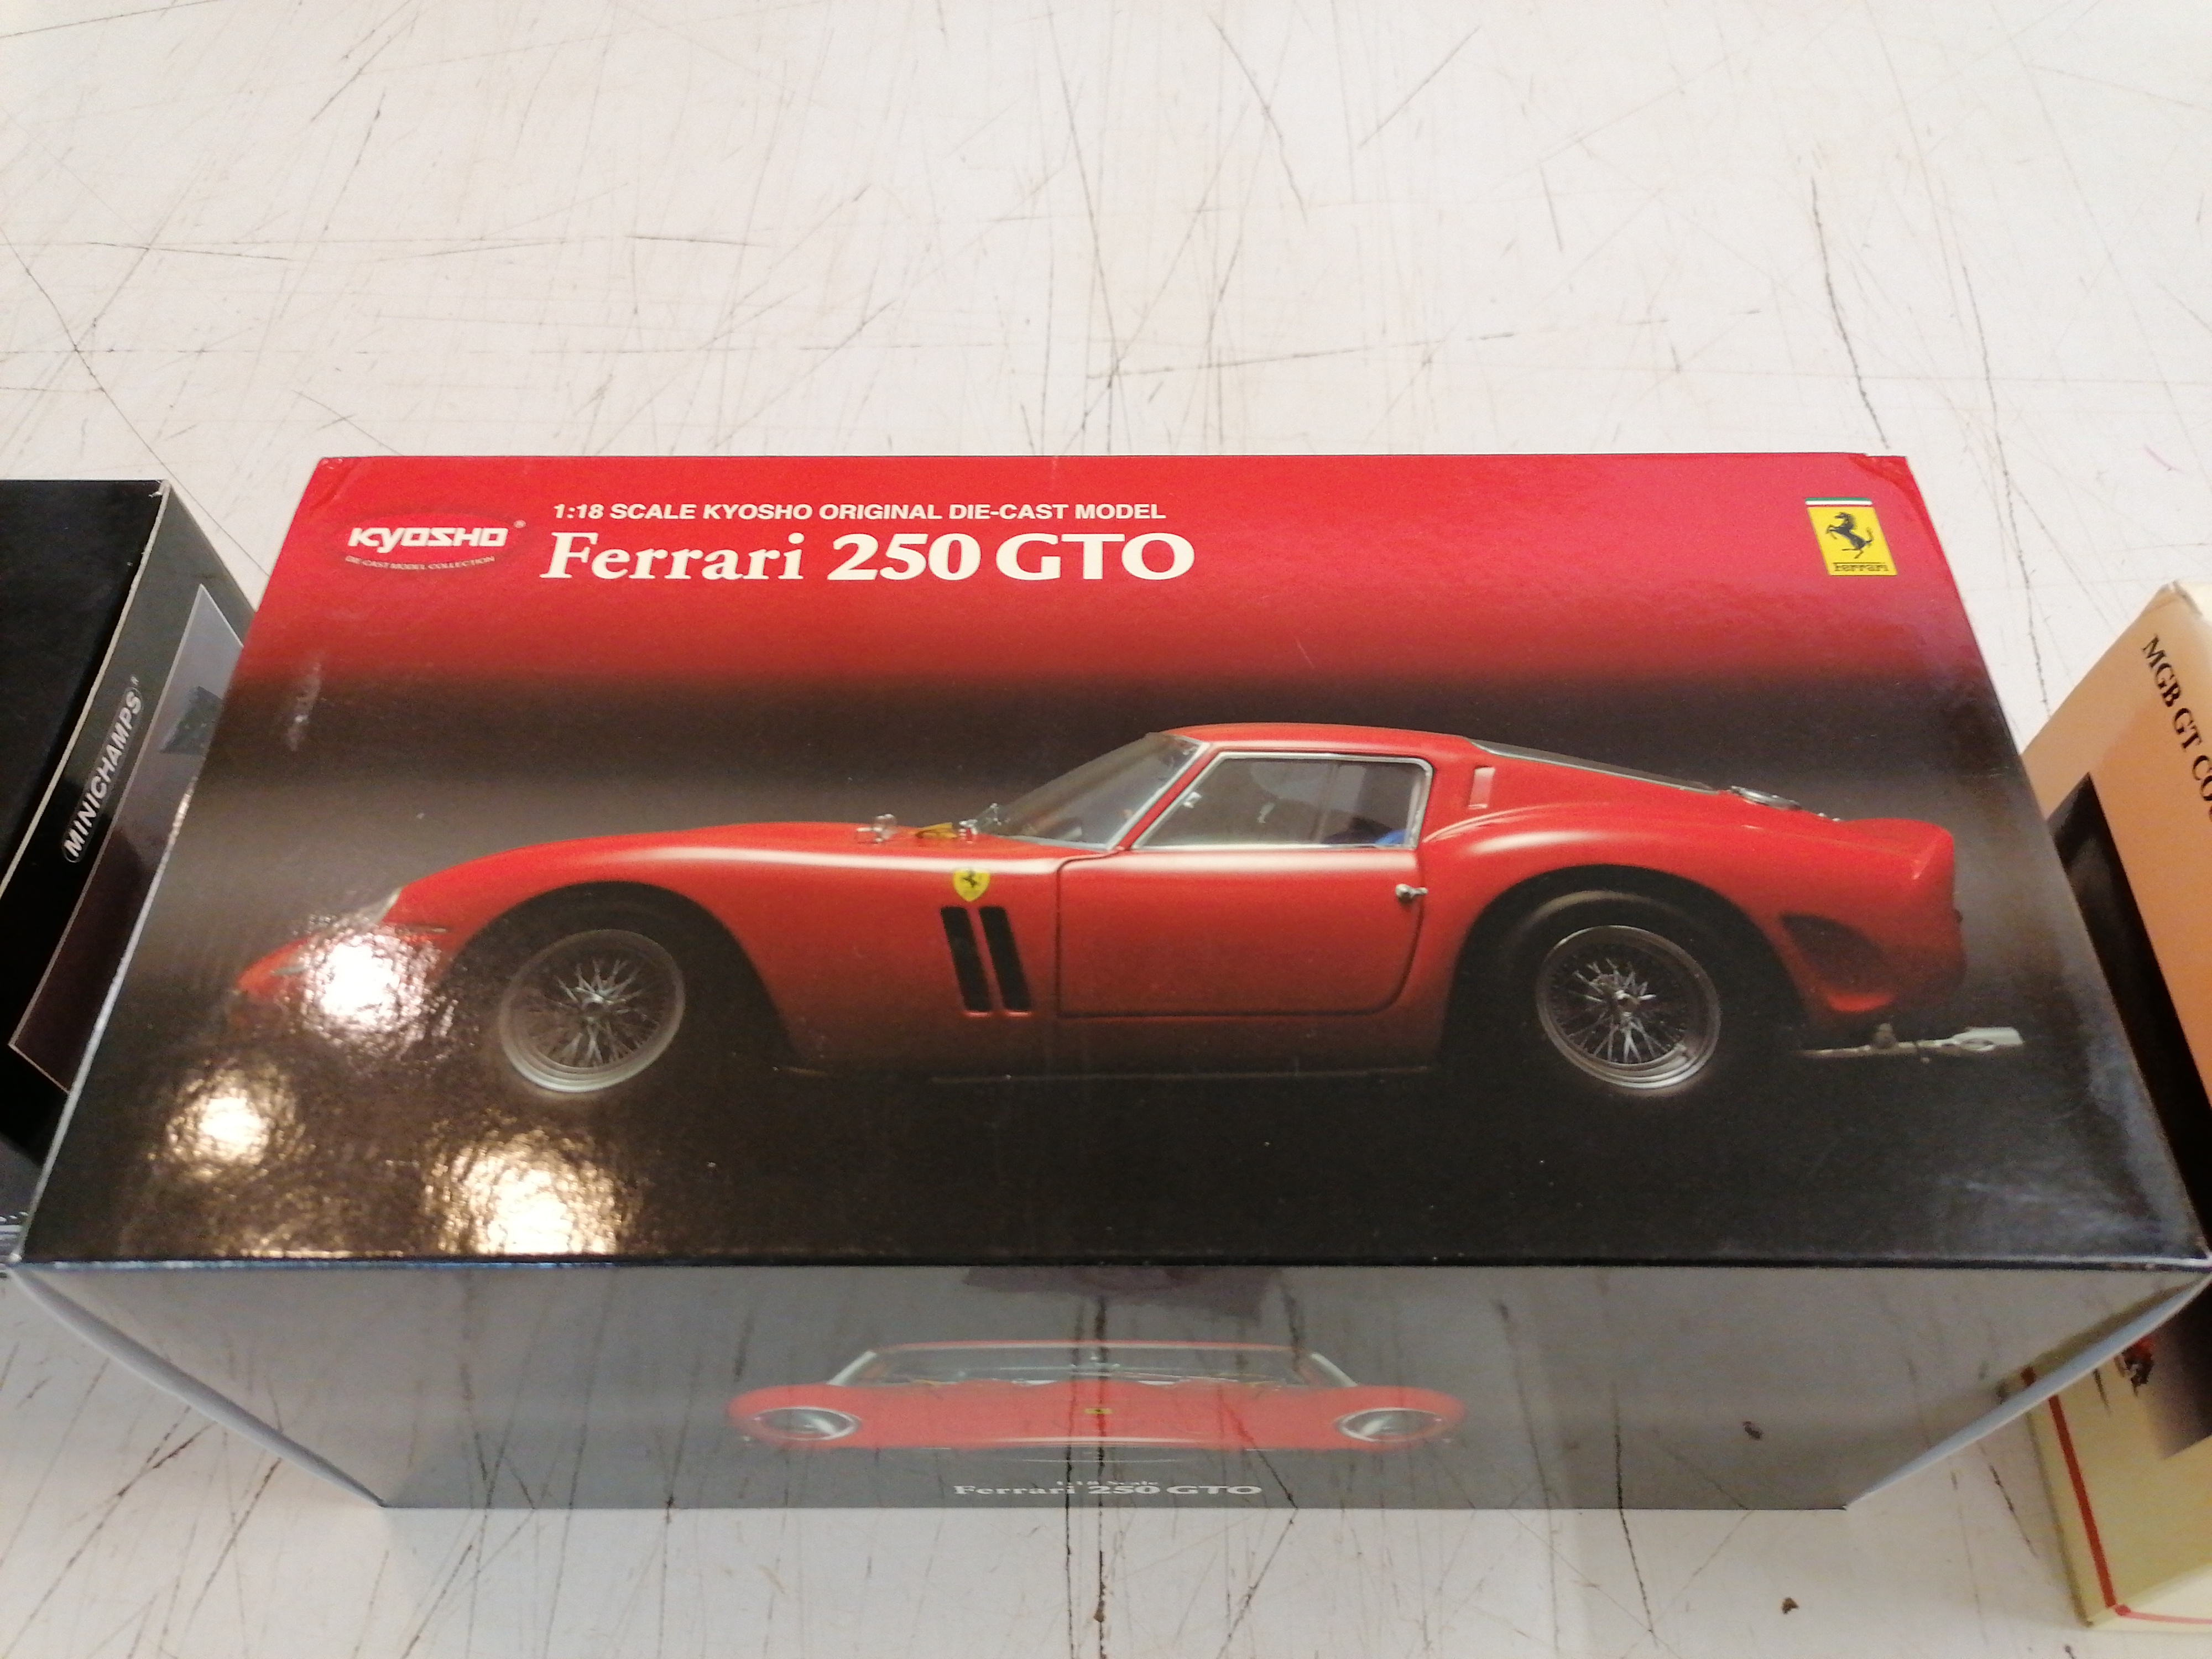 "<p>Miniature Kyosho Ferrari<br />250 GTO<br />90,00 € T.T.C<br /><a href=""/Article/110911?type=depose"" style=""color:white;"" target=""_blank"">Lien vers l&#39;article</a></p>"